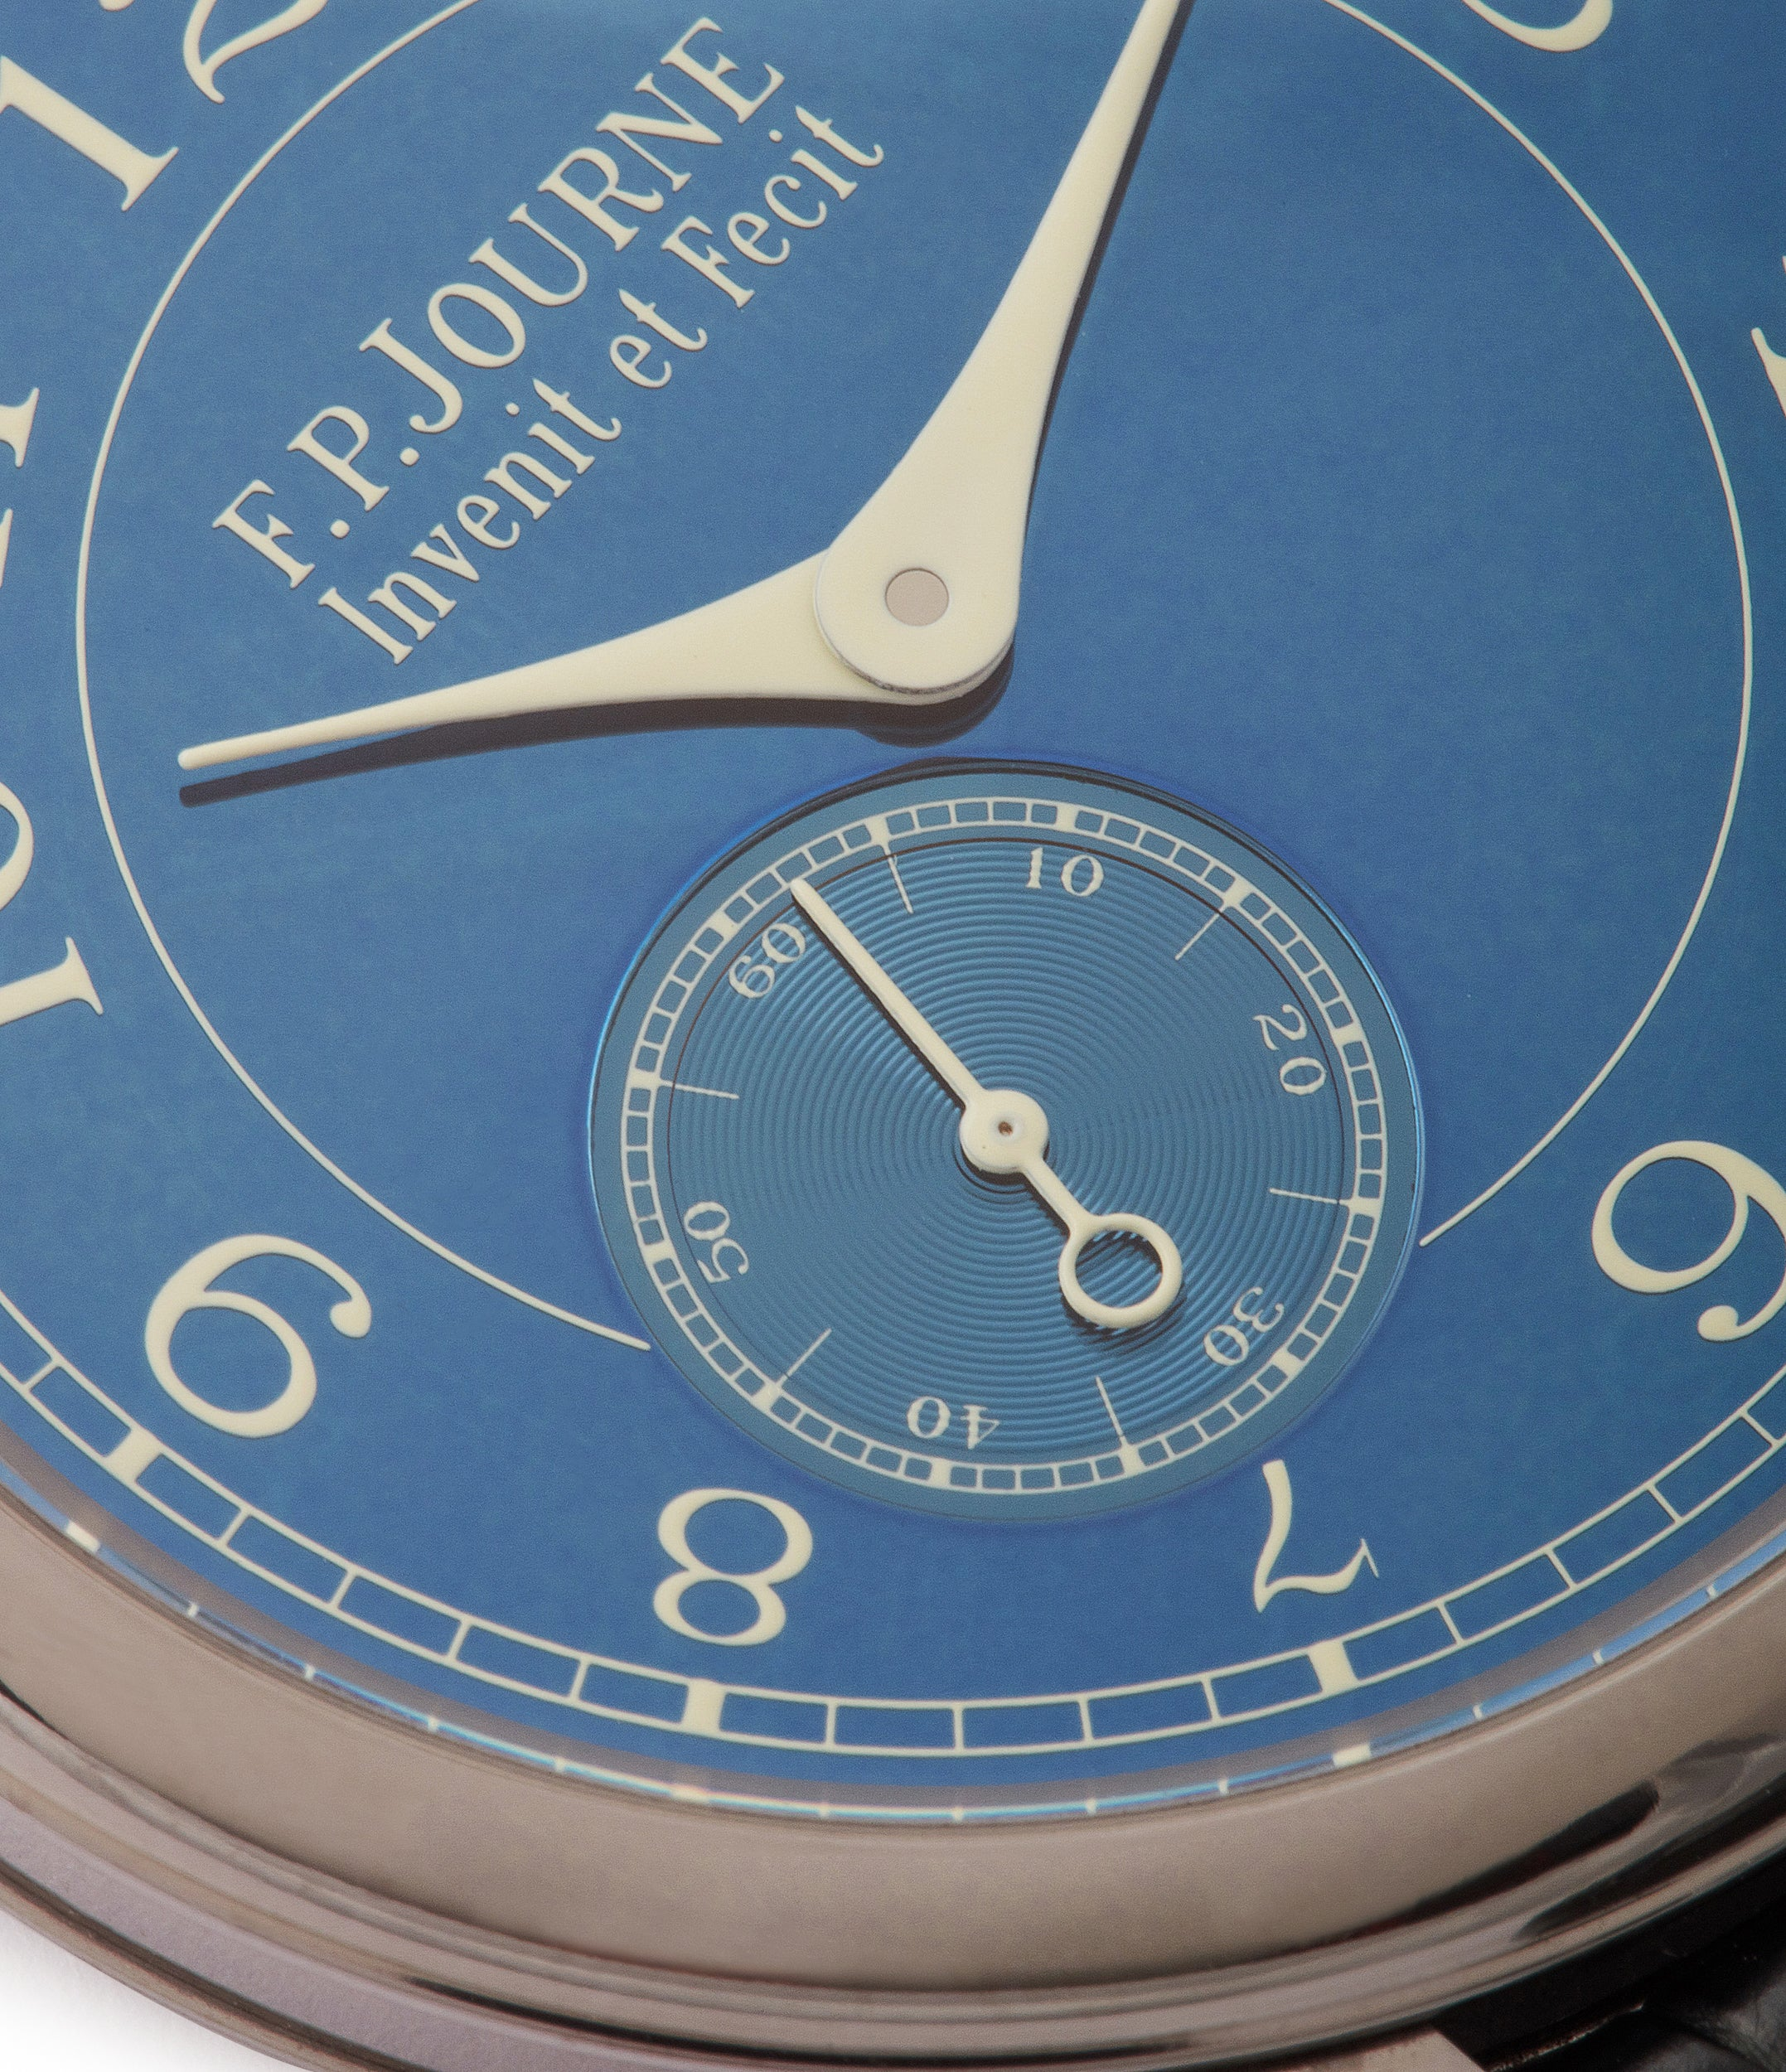 pre-owned tantalum F. P. Journe Chronometre Bleu blue dial rare dress watch for sale online at A Collected Man London approved reseller of independent watchmakers